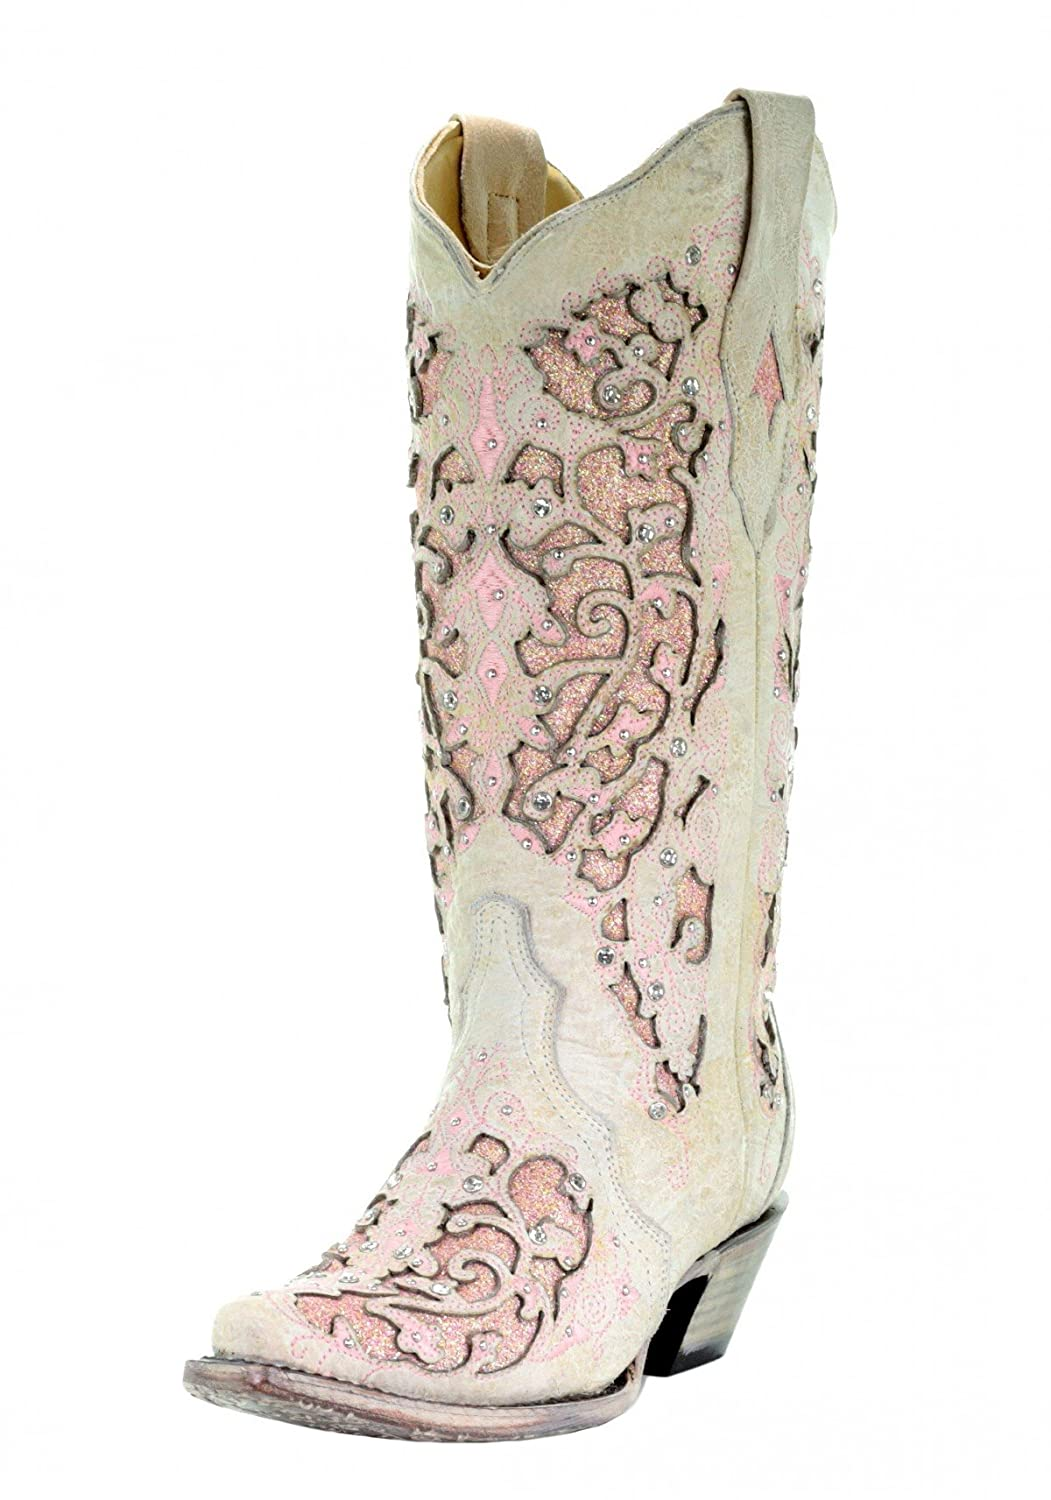 CORRAL A3587 White Pink Leather Glitter Inlay Boot with Crystals B07C2T5VLT 9 B(M) US